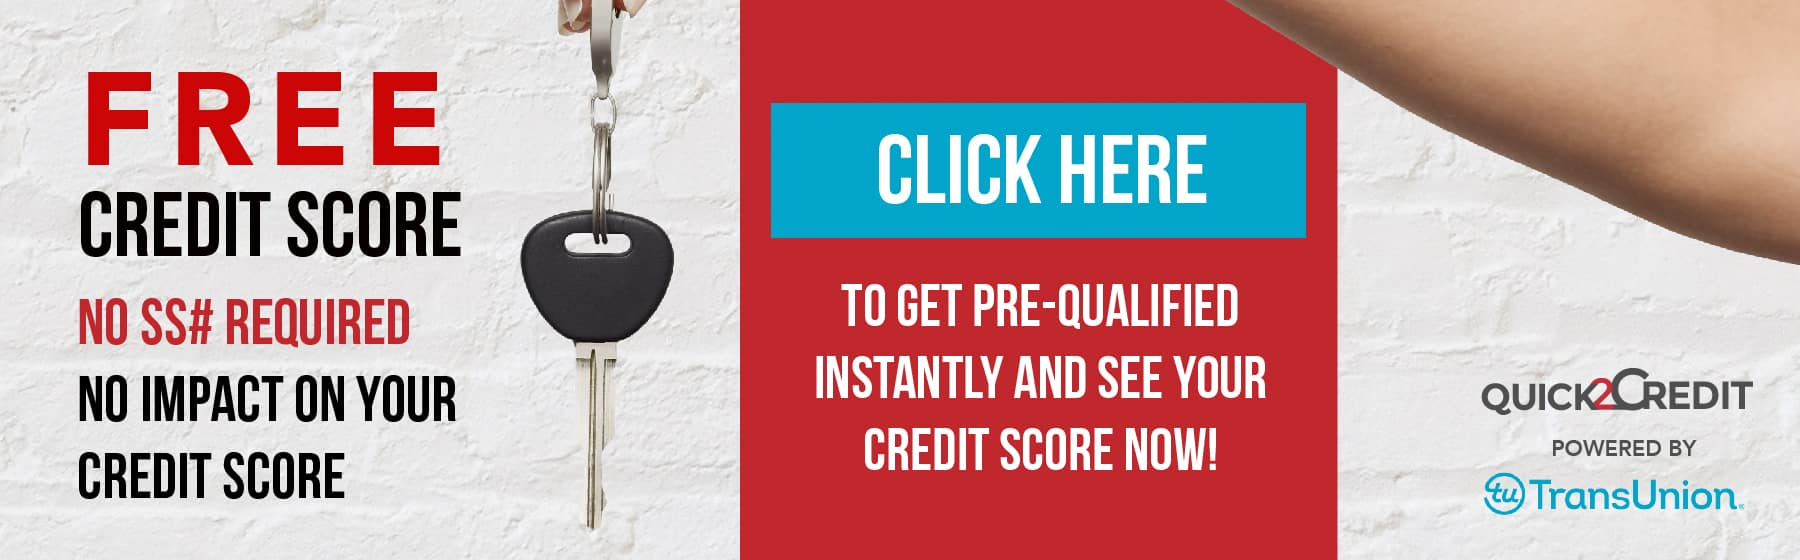 Free Credit Score Here